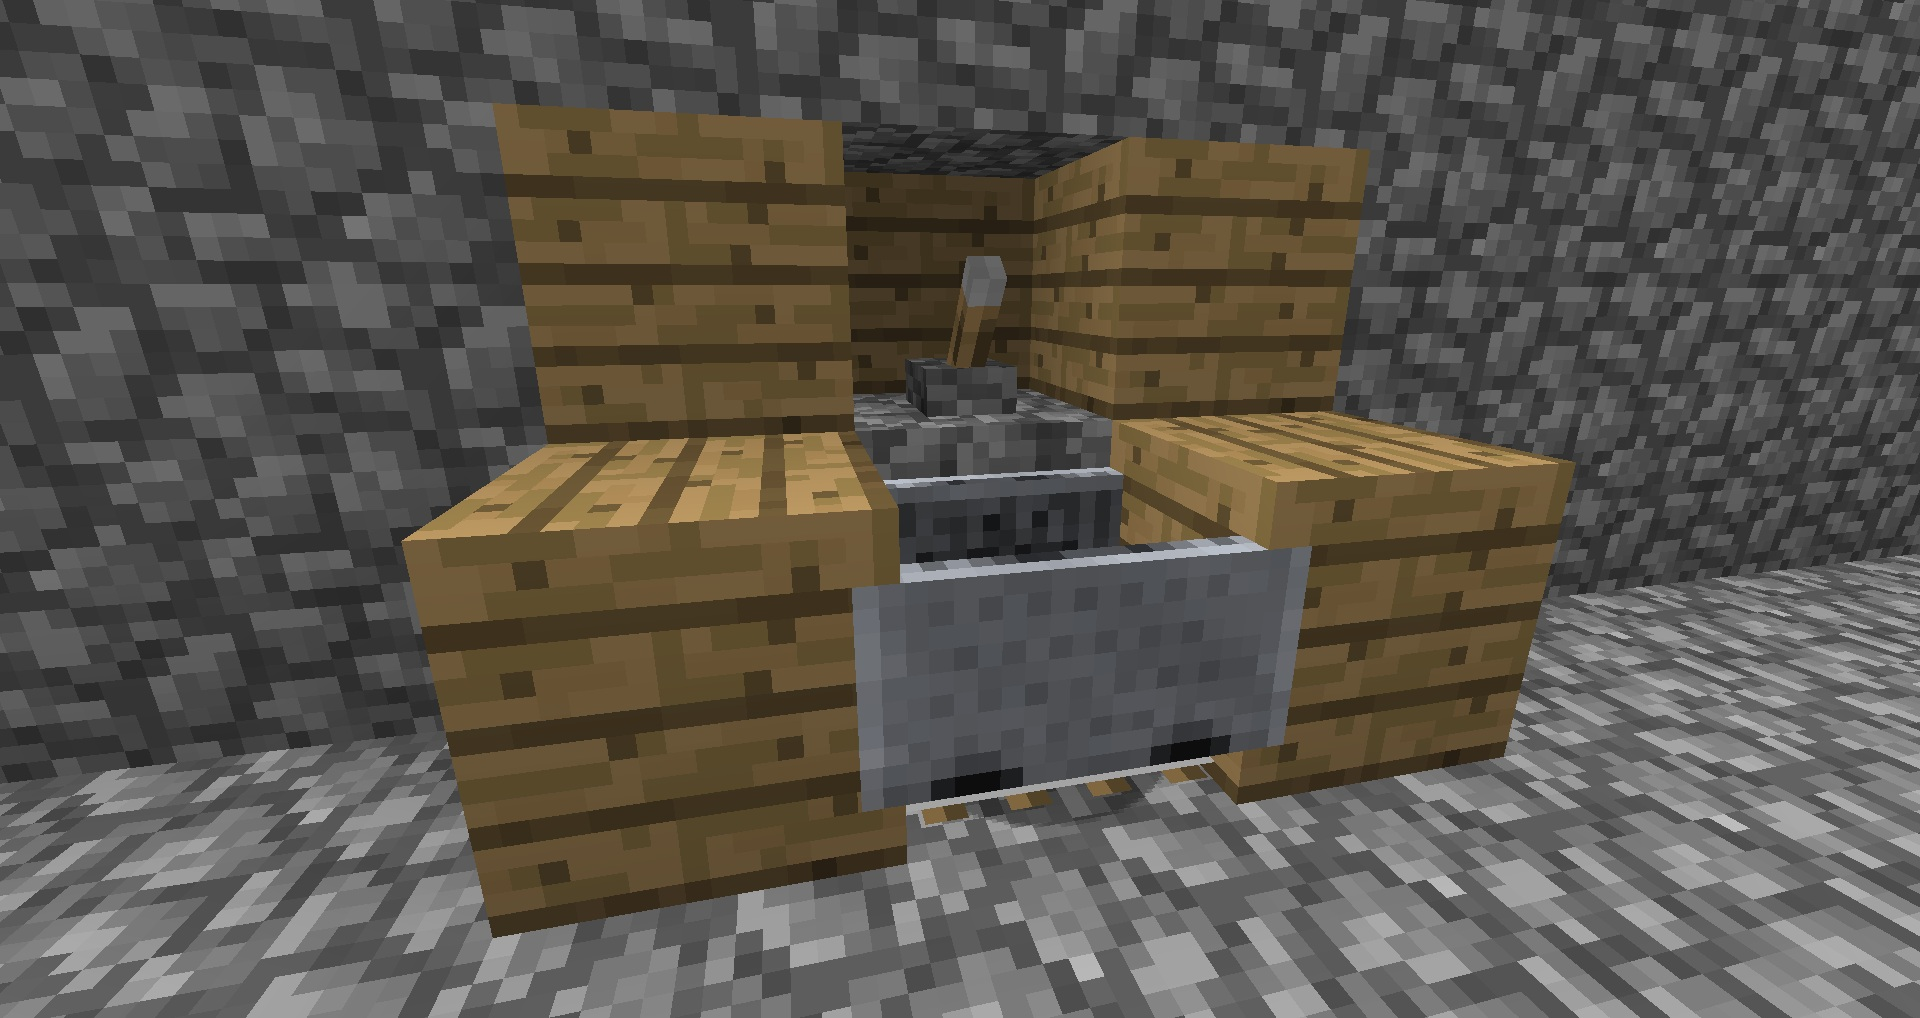 Kitchen Minecraftdesign Wiki FANDOM powered by Wikia